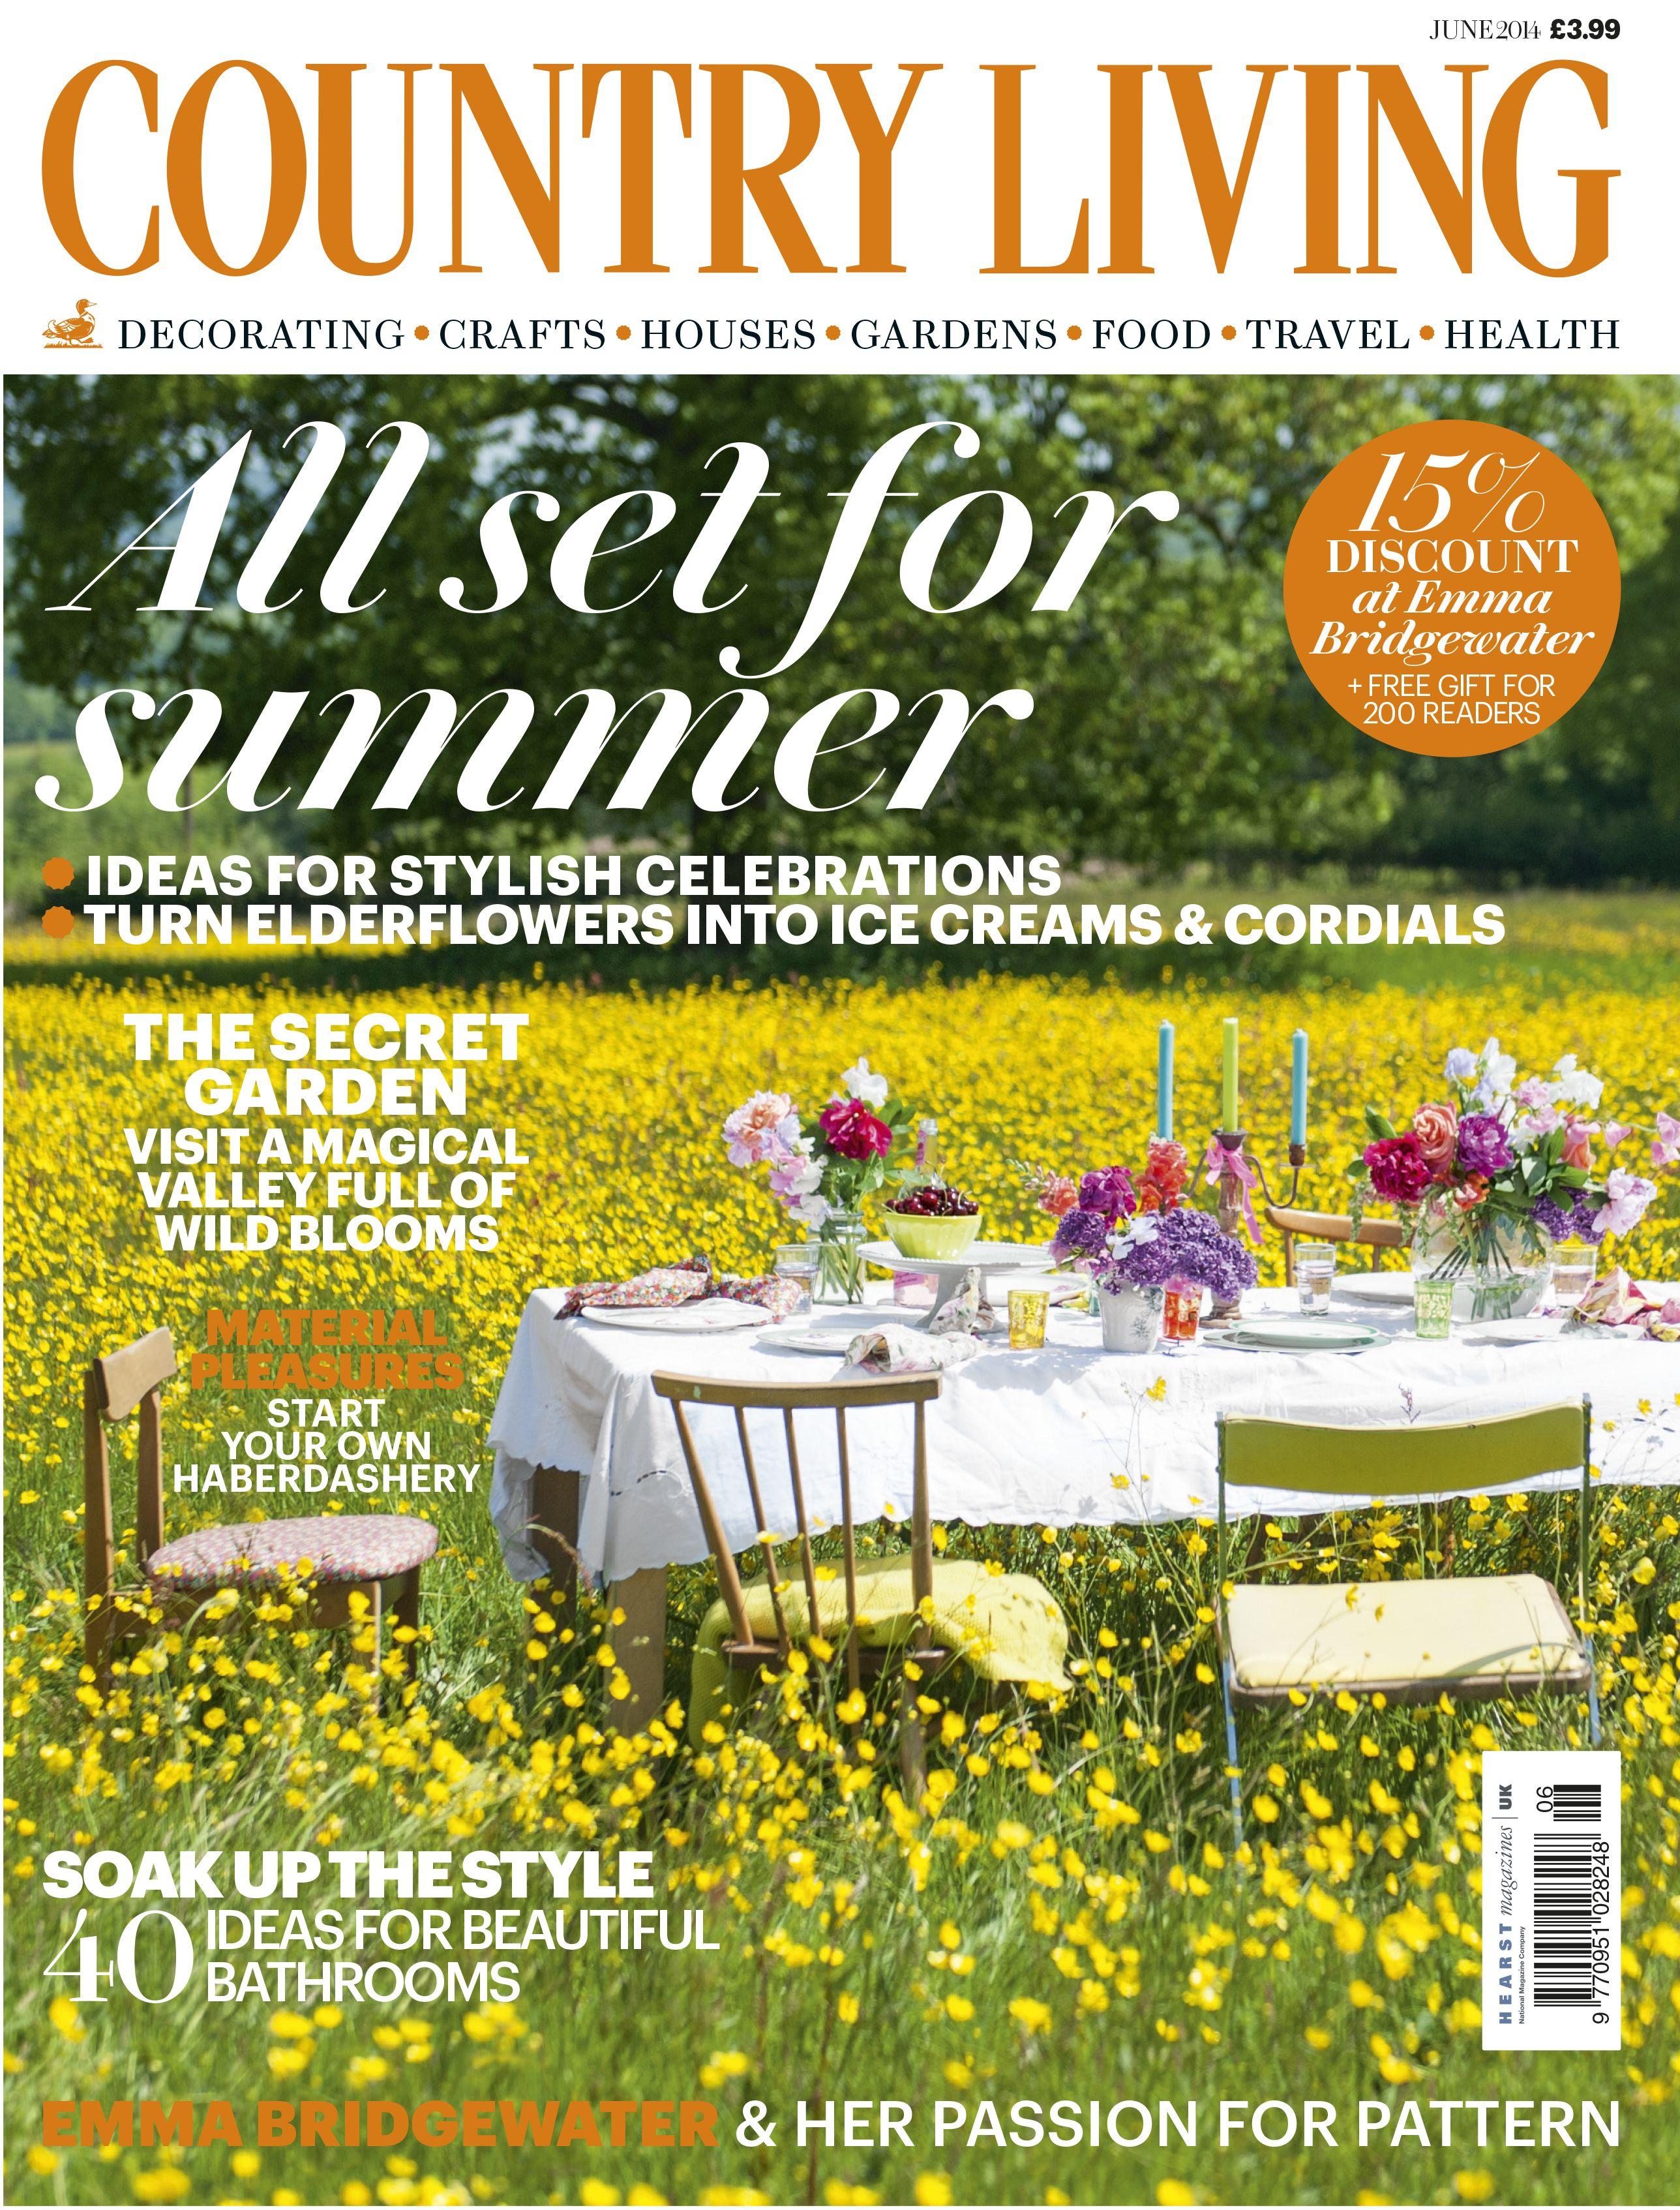 Country Living June 2014 Cover Countryliving Co Uk Country Living Magazine Country Living Uk Country Living